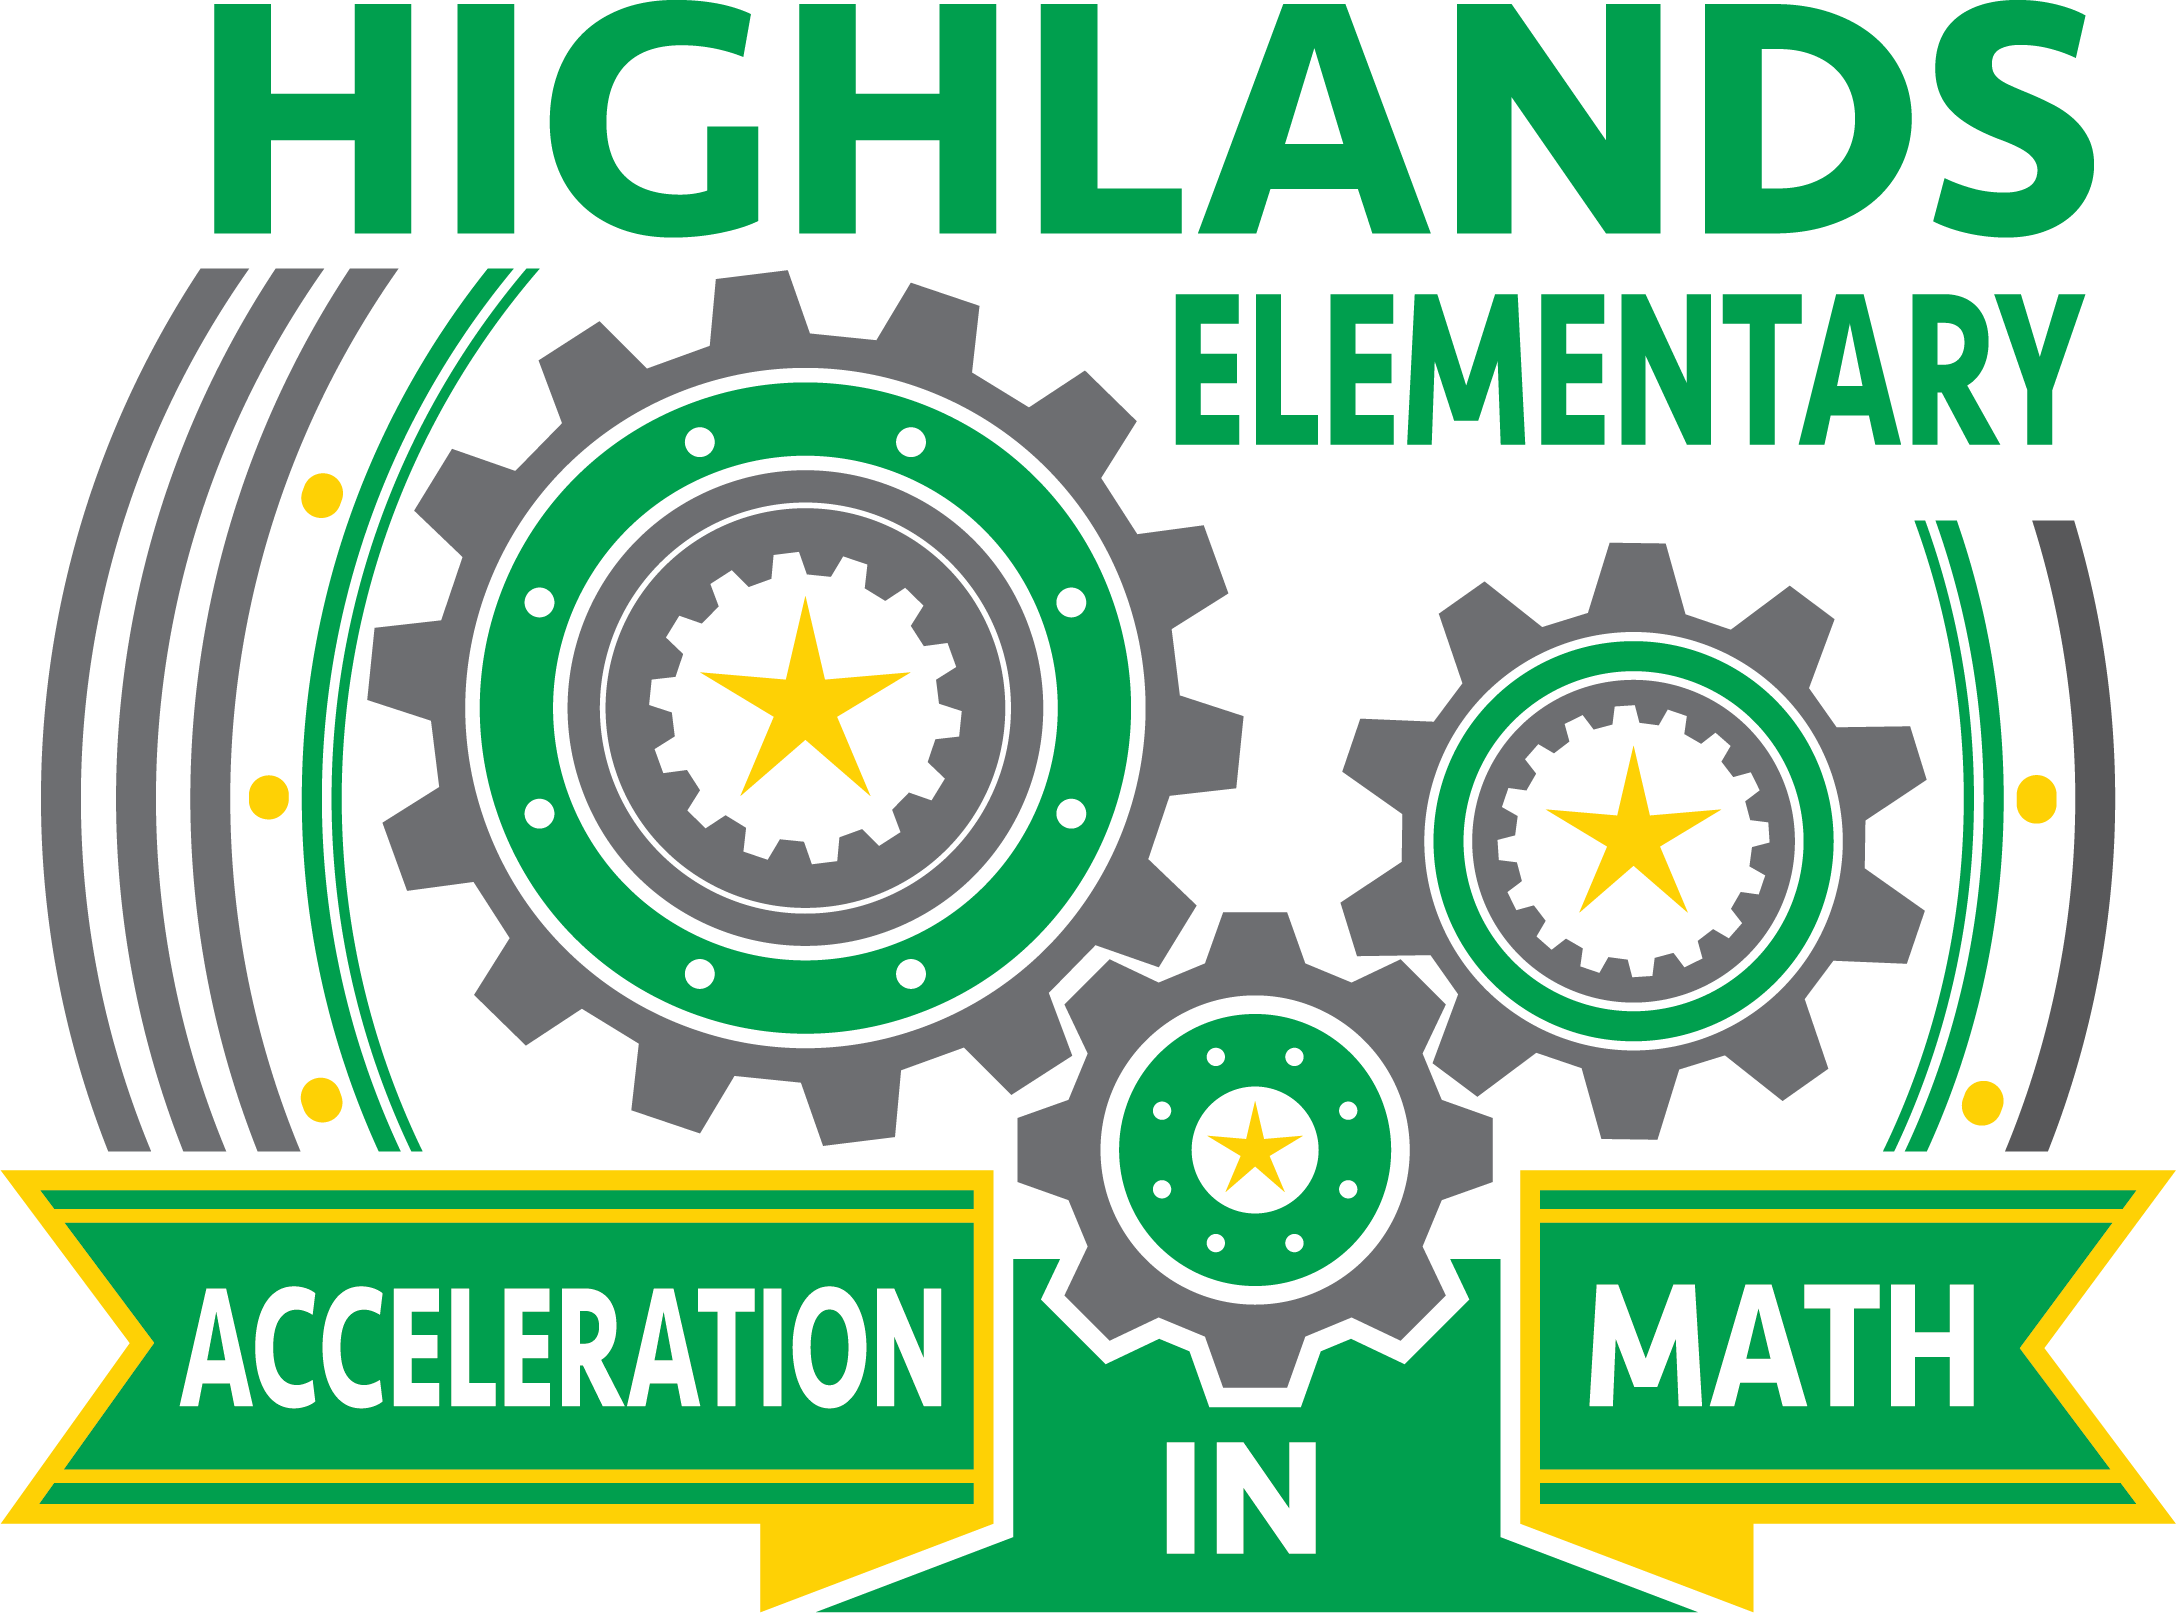 Highlands Elementary School Logo